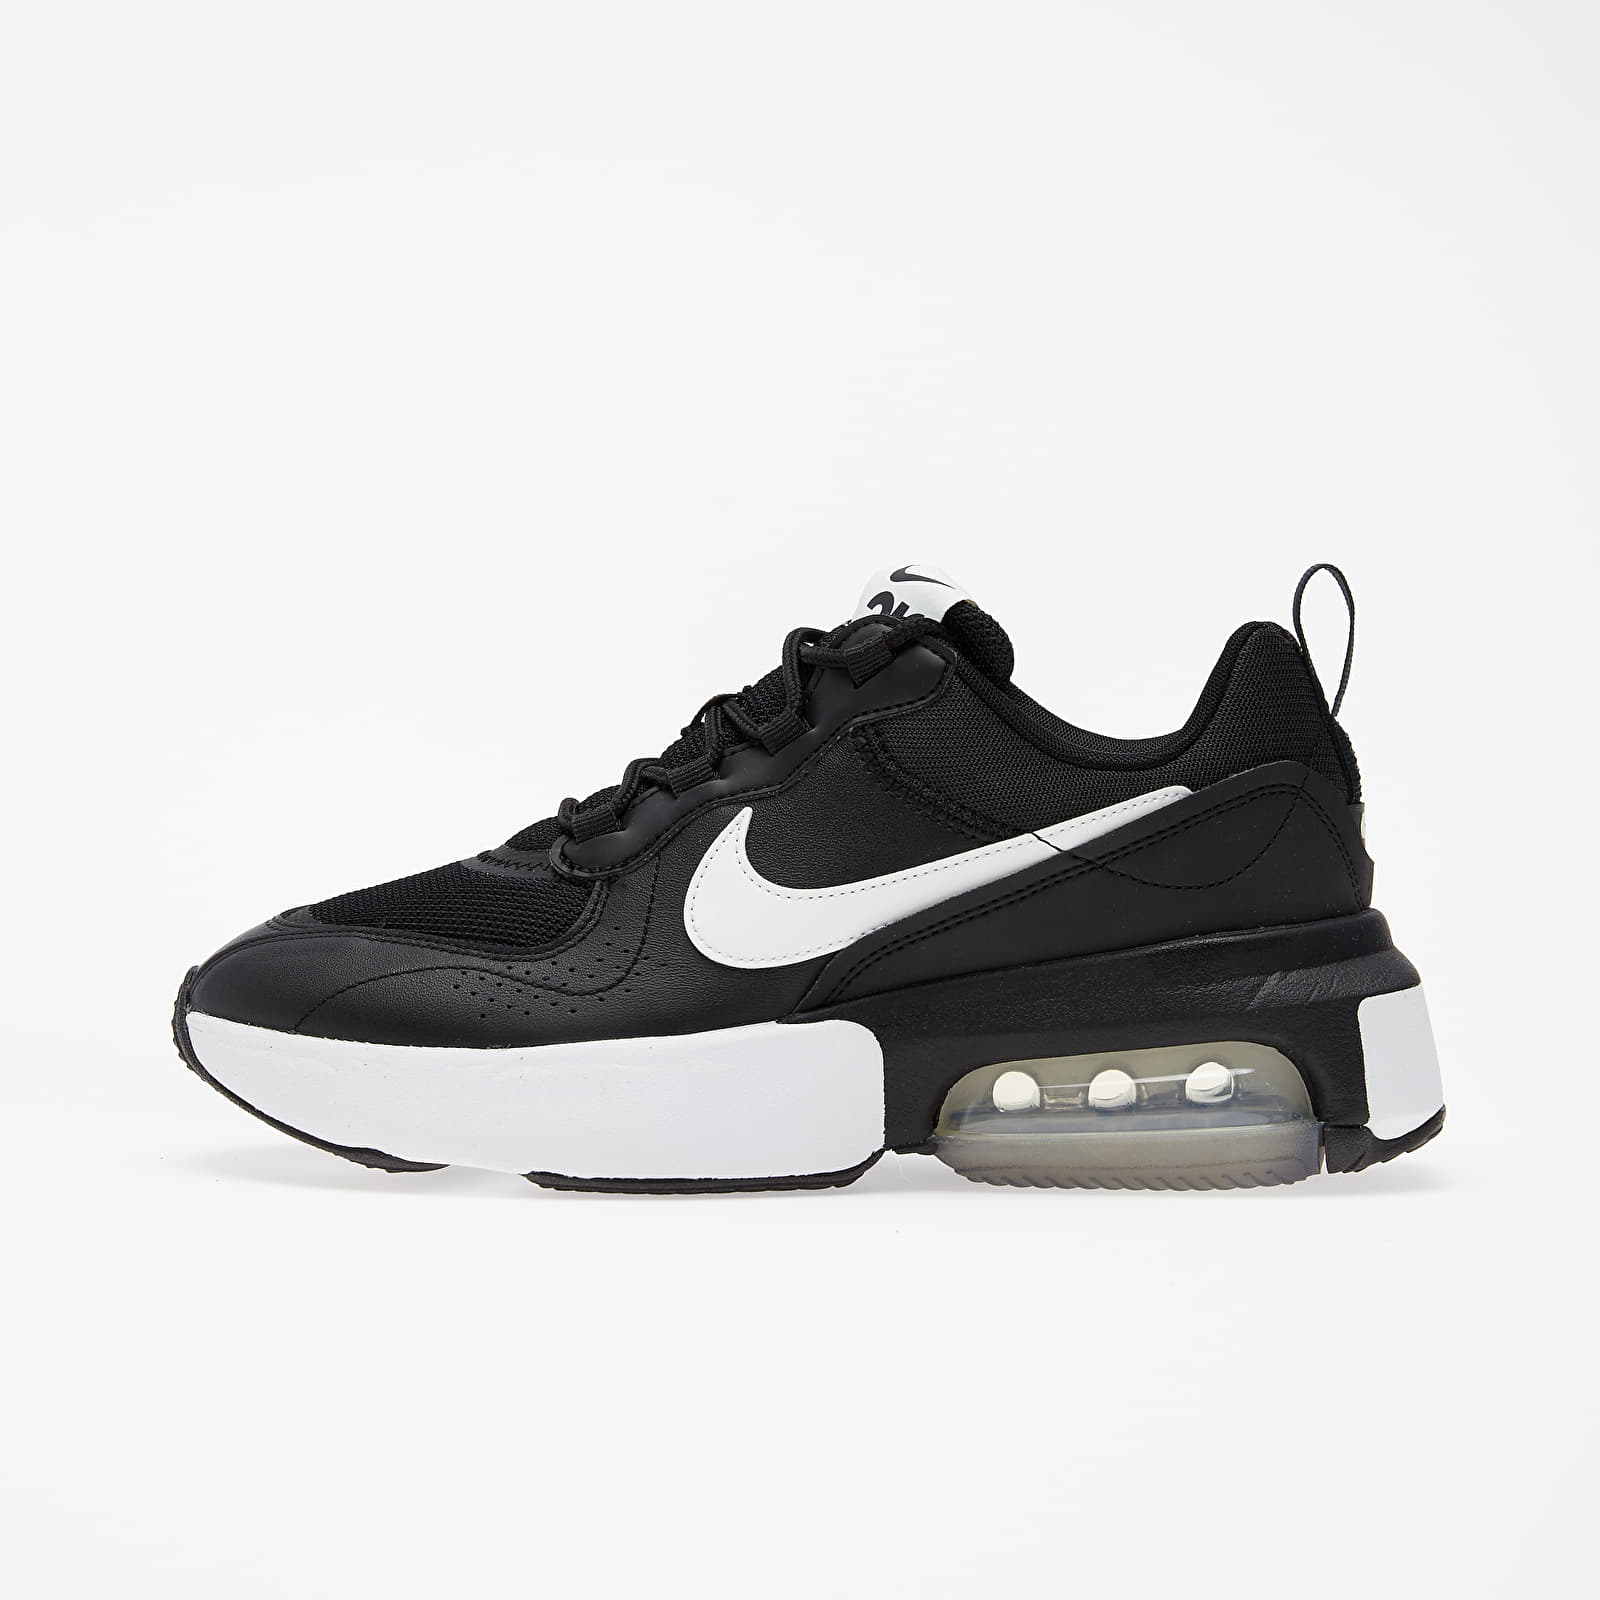 Frauen Nike W Air Max Verona Black/ Summit White-Anthracite